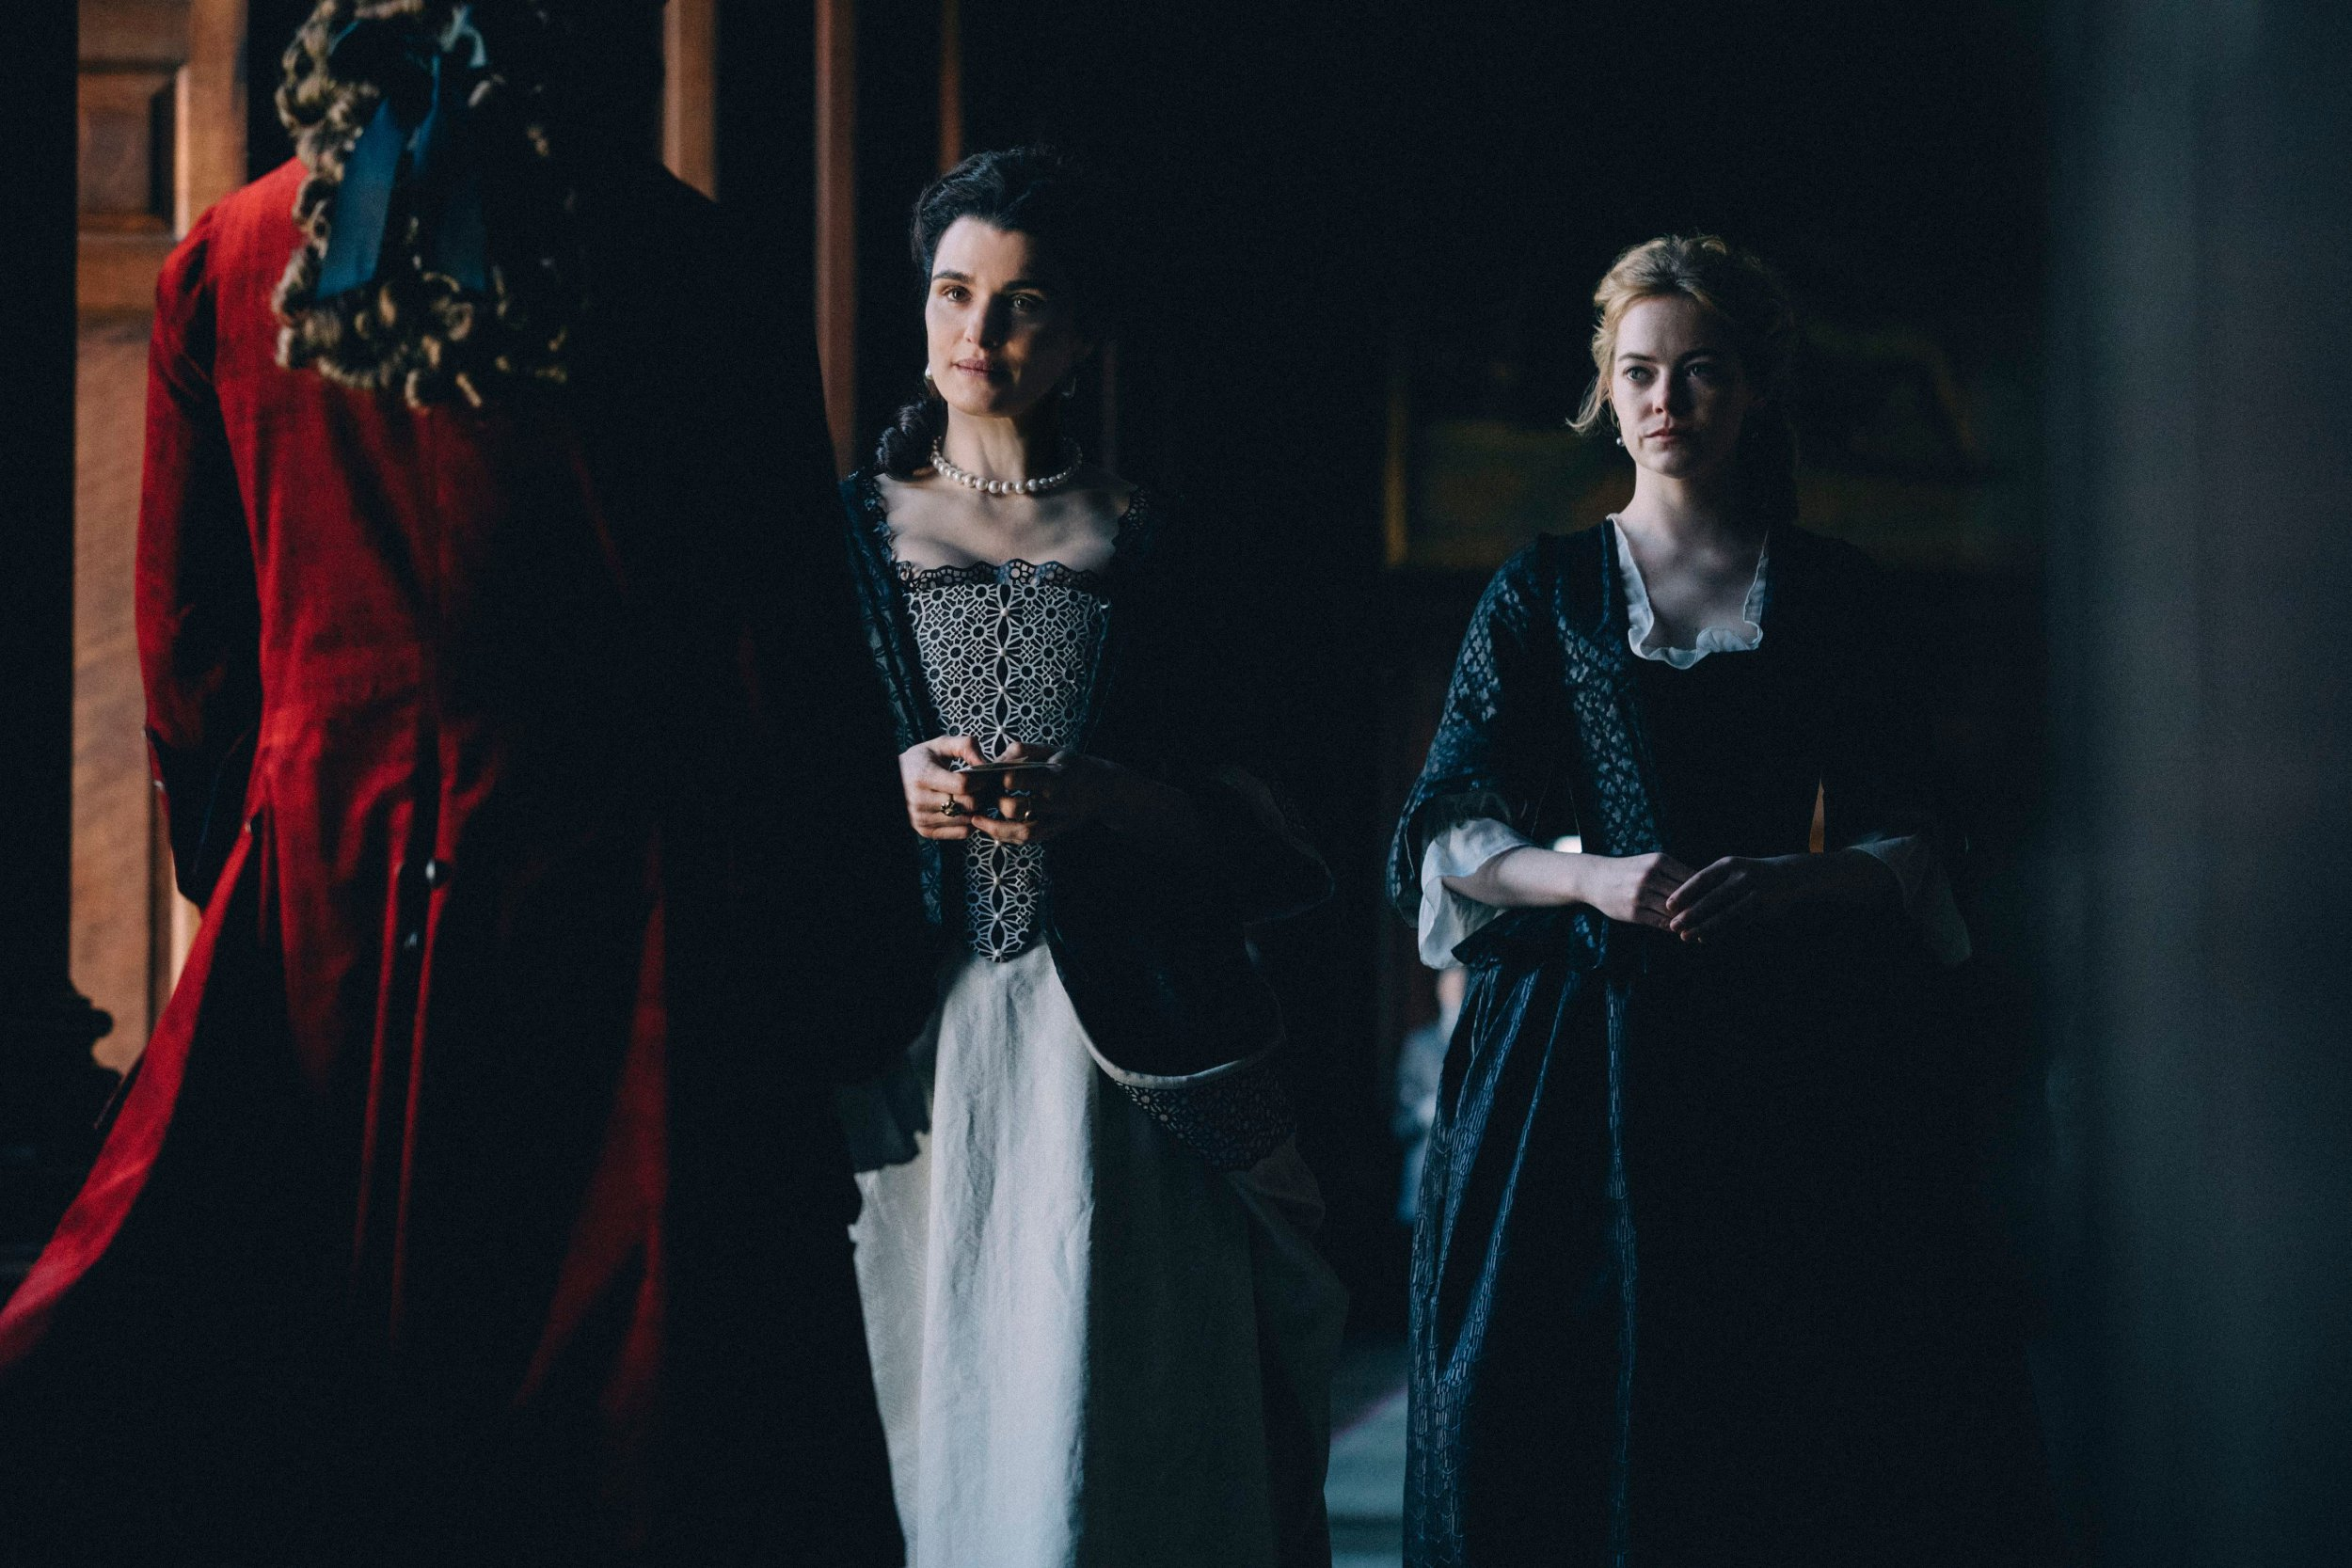 Rachel Weisz and Emma Stone in The Favourite